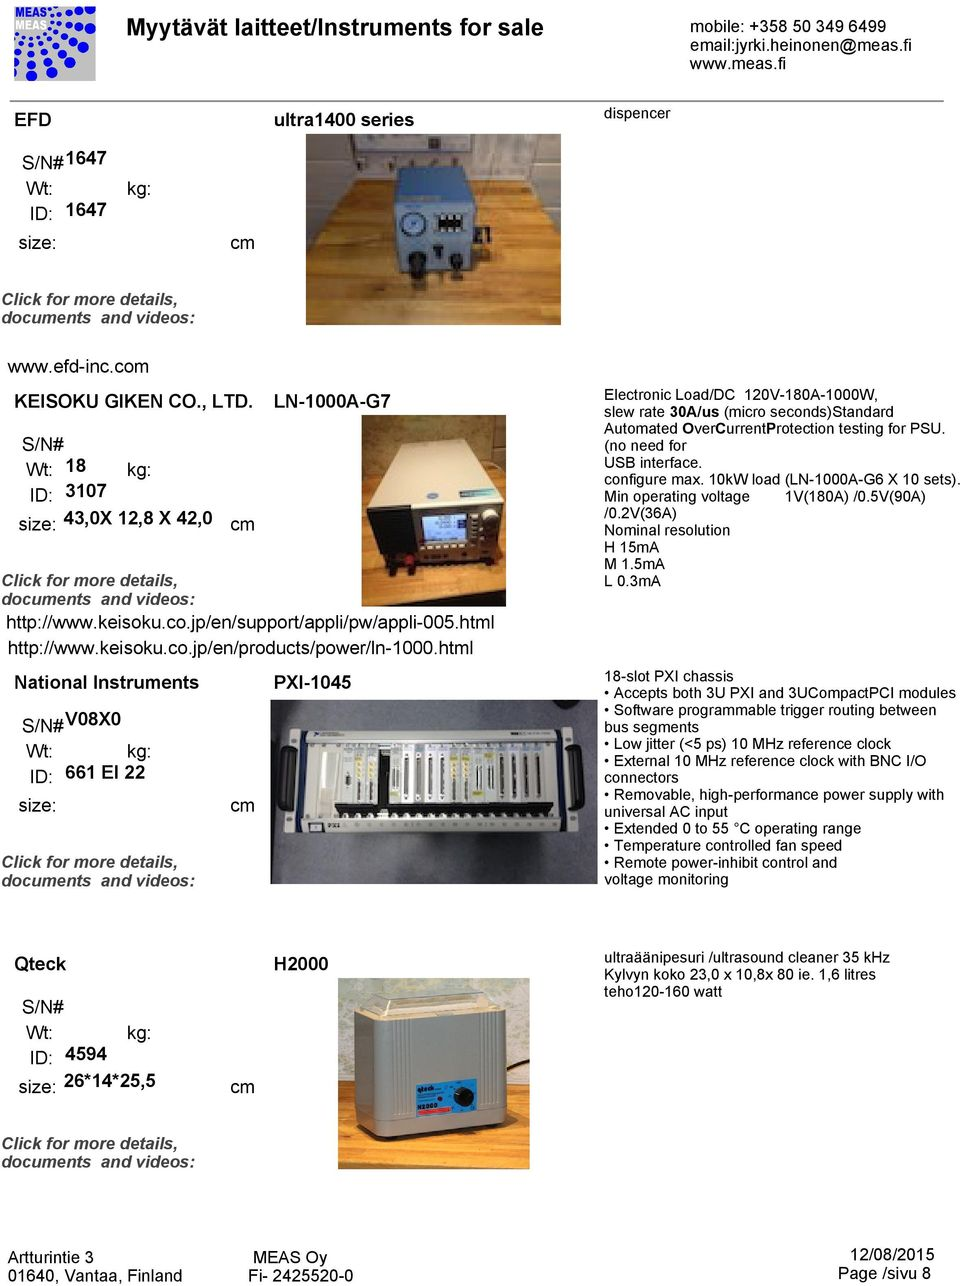 Myytvt Laitteet Instruments For Sale Mobile Pdf One Circuit Fiber Optic Rotary Joint Connnector 240vac Dc No Friction Html National V08x0 1296 Id 661 Ei 22 Pxi 1045 Electronic Load